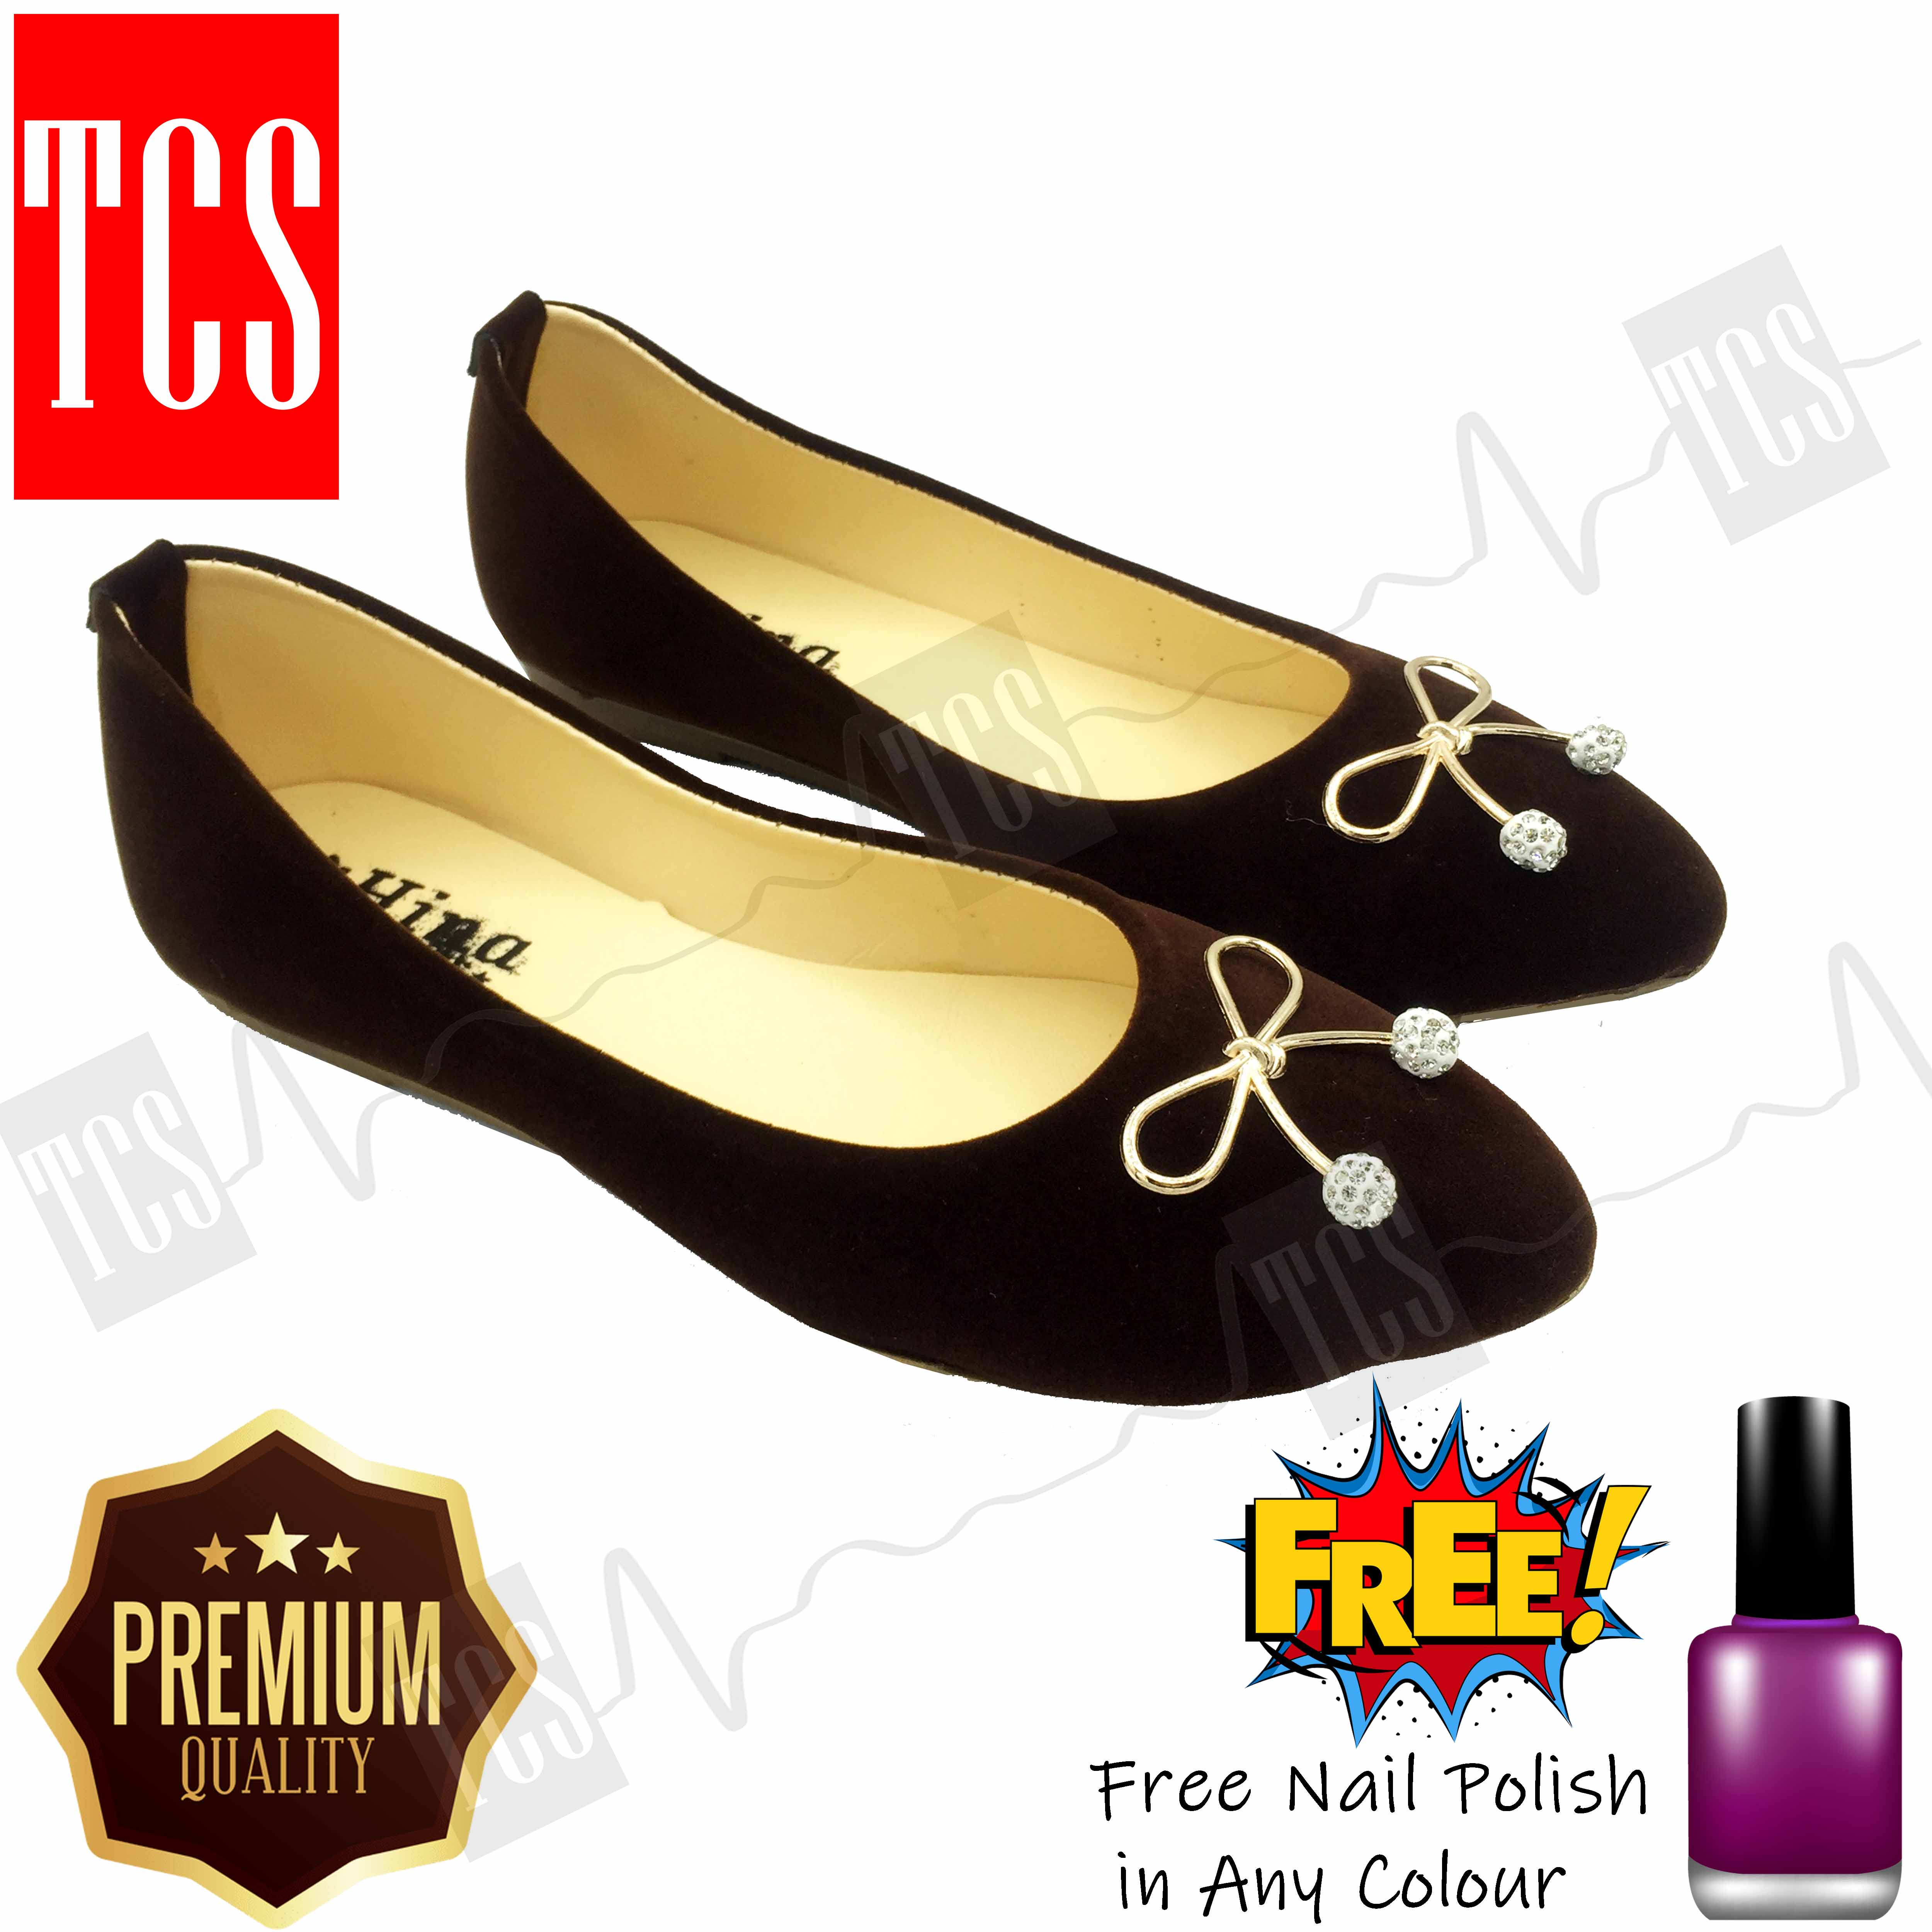 Football Buckle Pumpi Highly Comfortable in Brown Colour Premium Quality